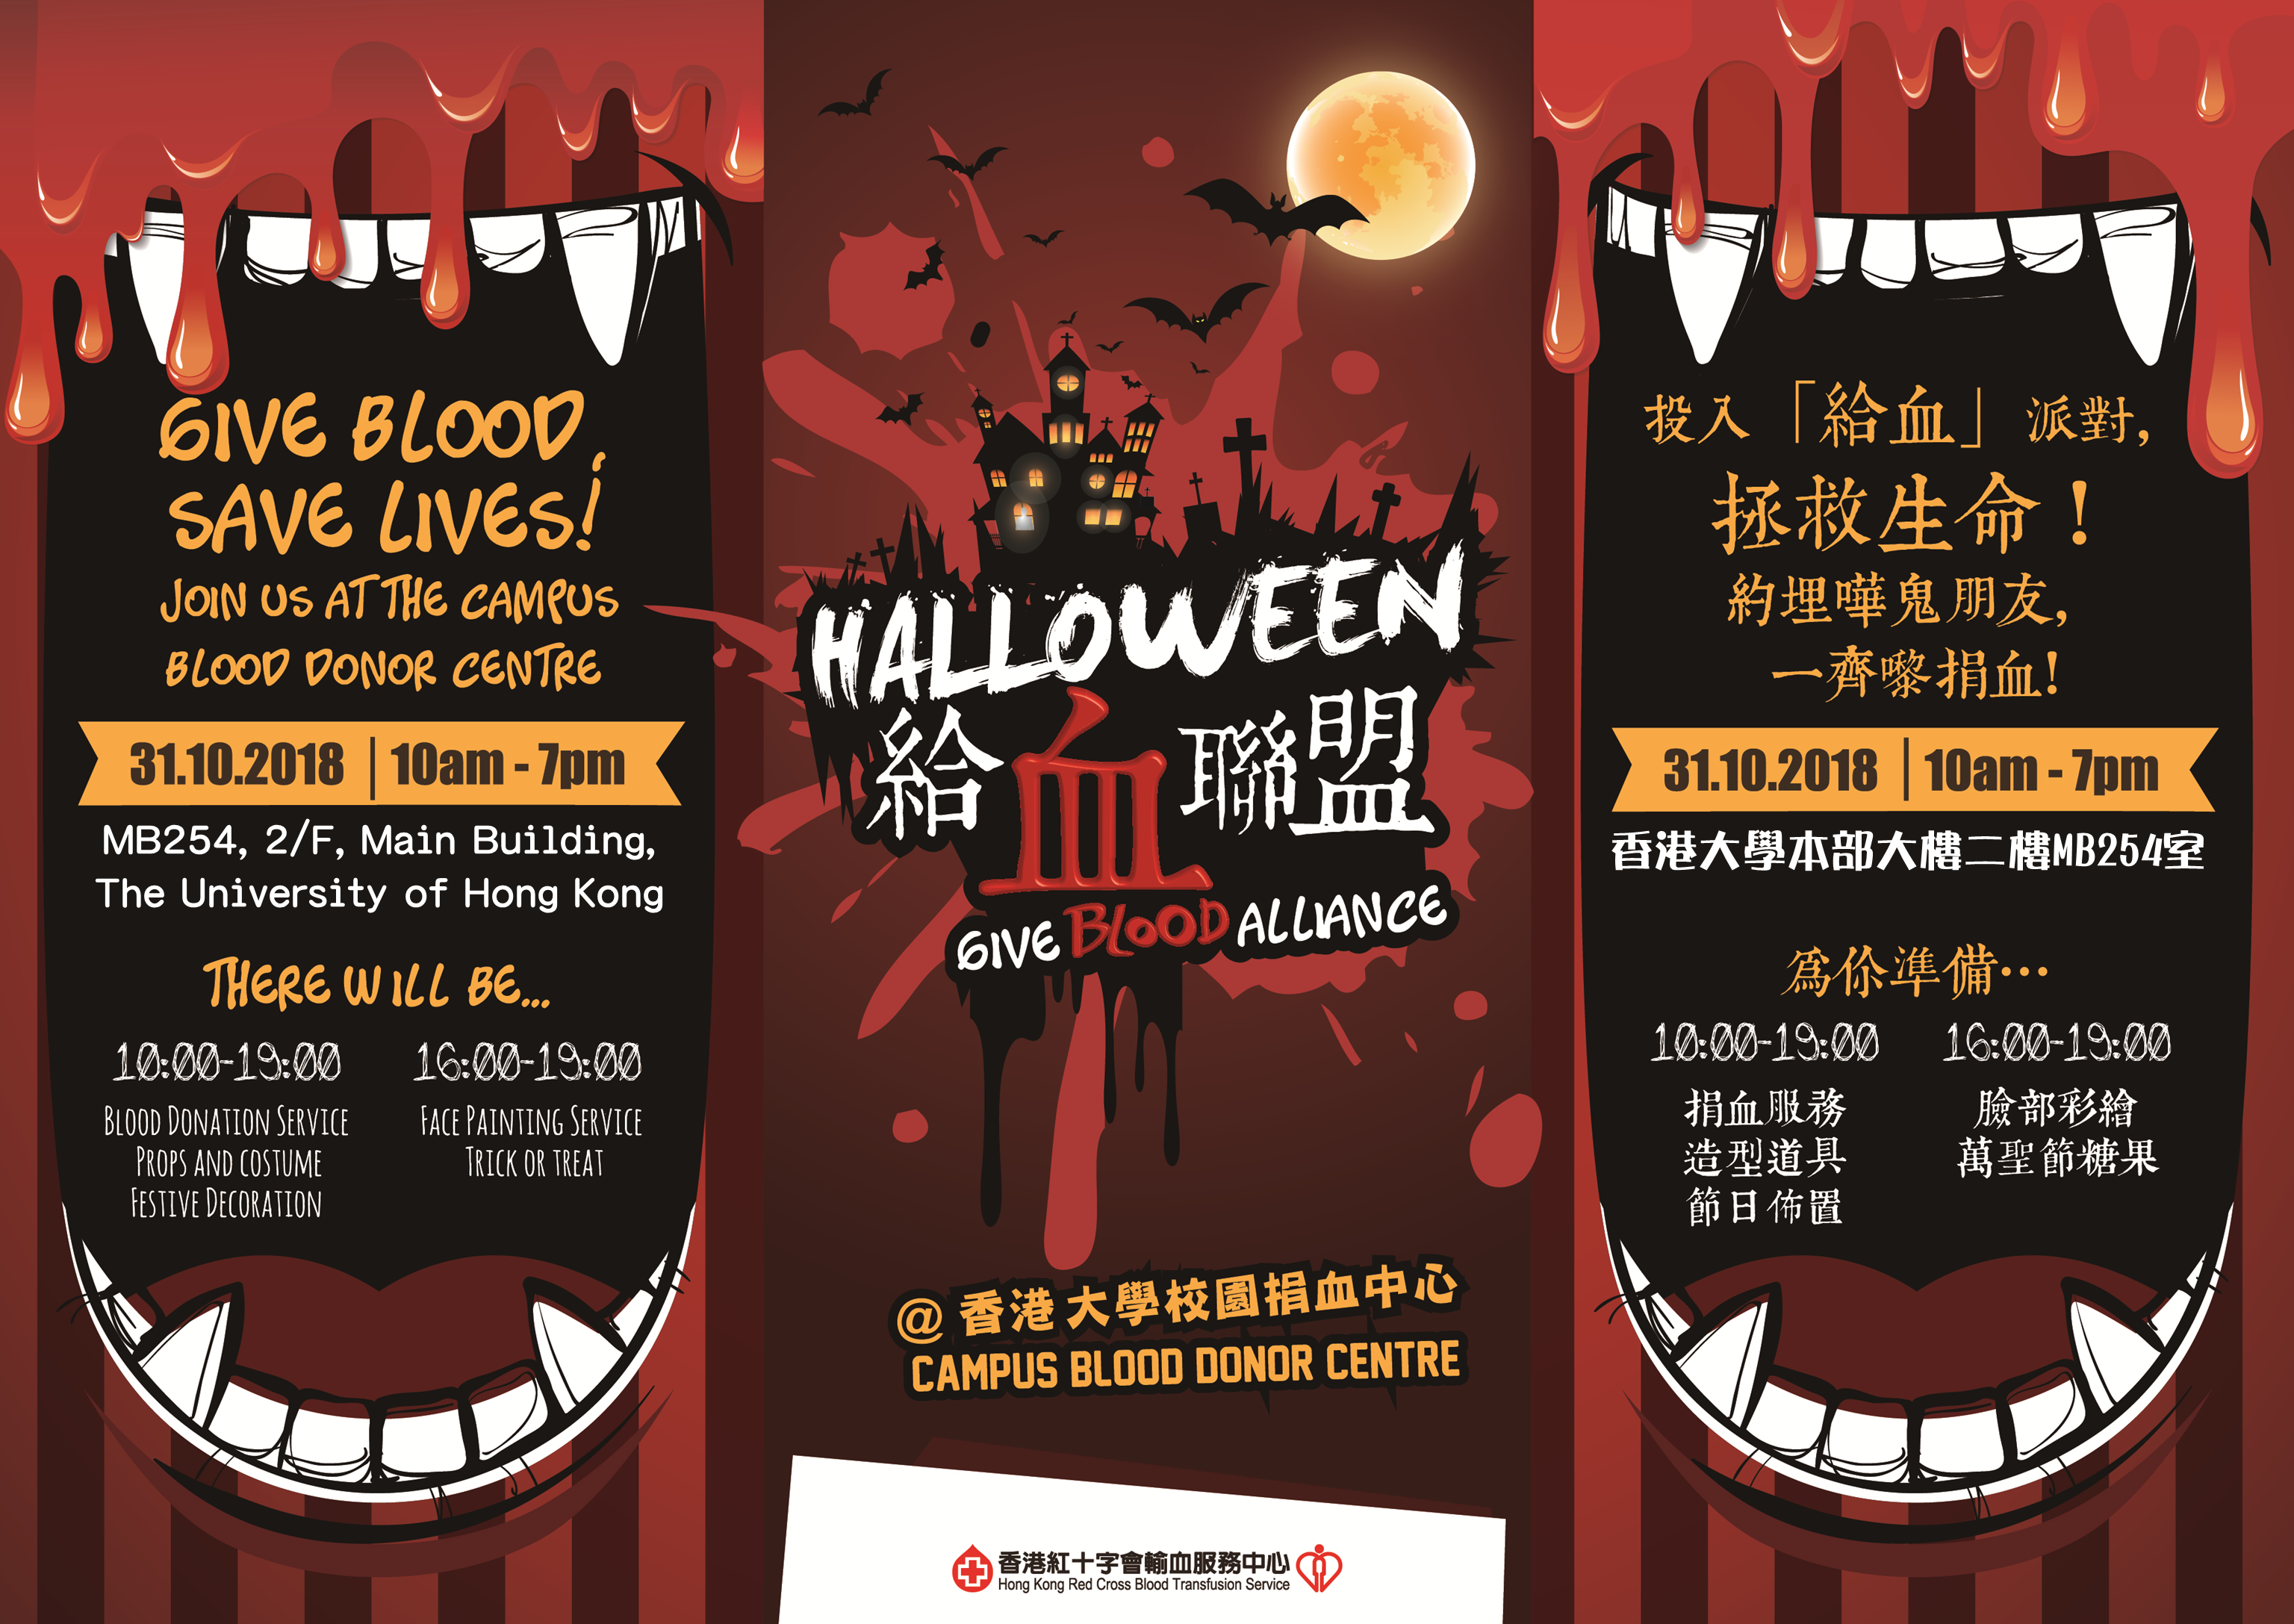 read Campus Blood Donor Centre at Main Building - Halloween Give Blood Alliance (31 Oct)